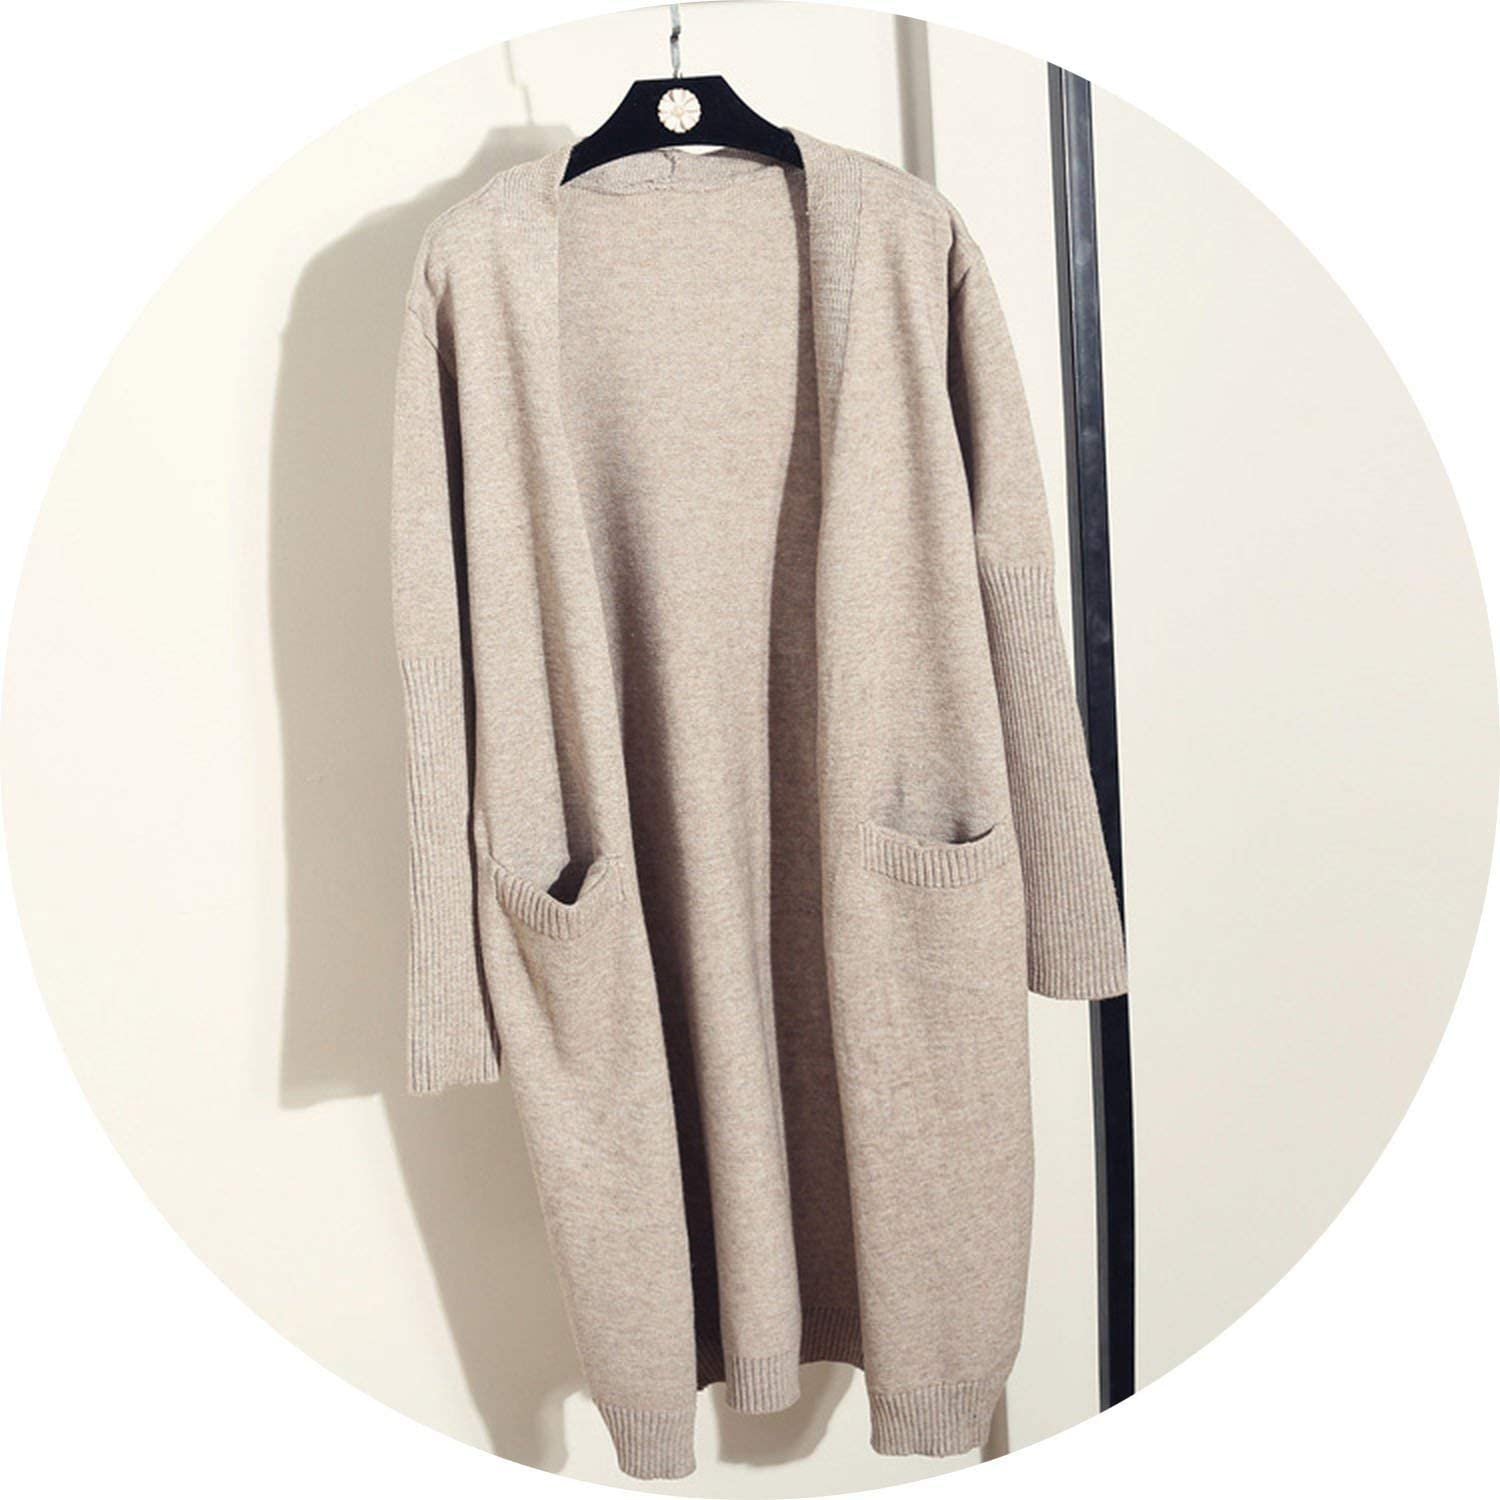 colorfulspace Cashmere Cardigans Women Casual Pockets Solid Chunky Sweater Open Front Thread Sleeve Loose Long Cardigan